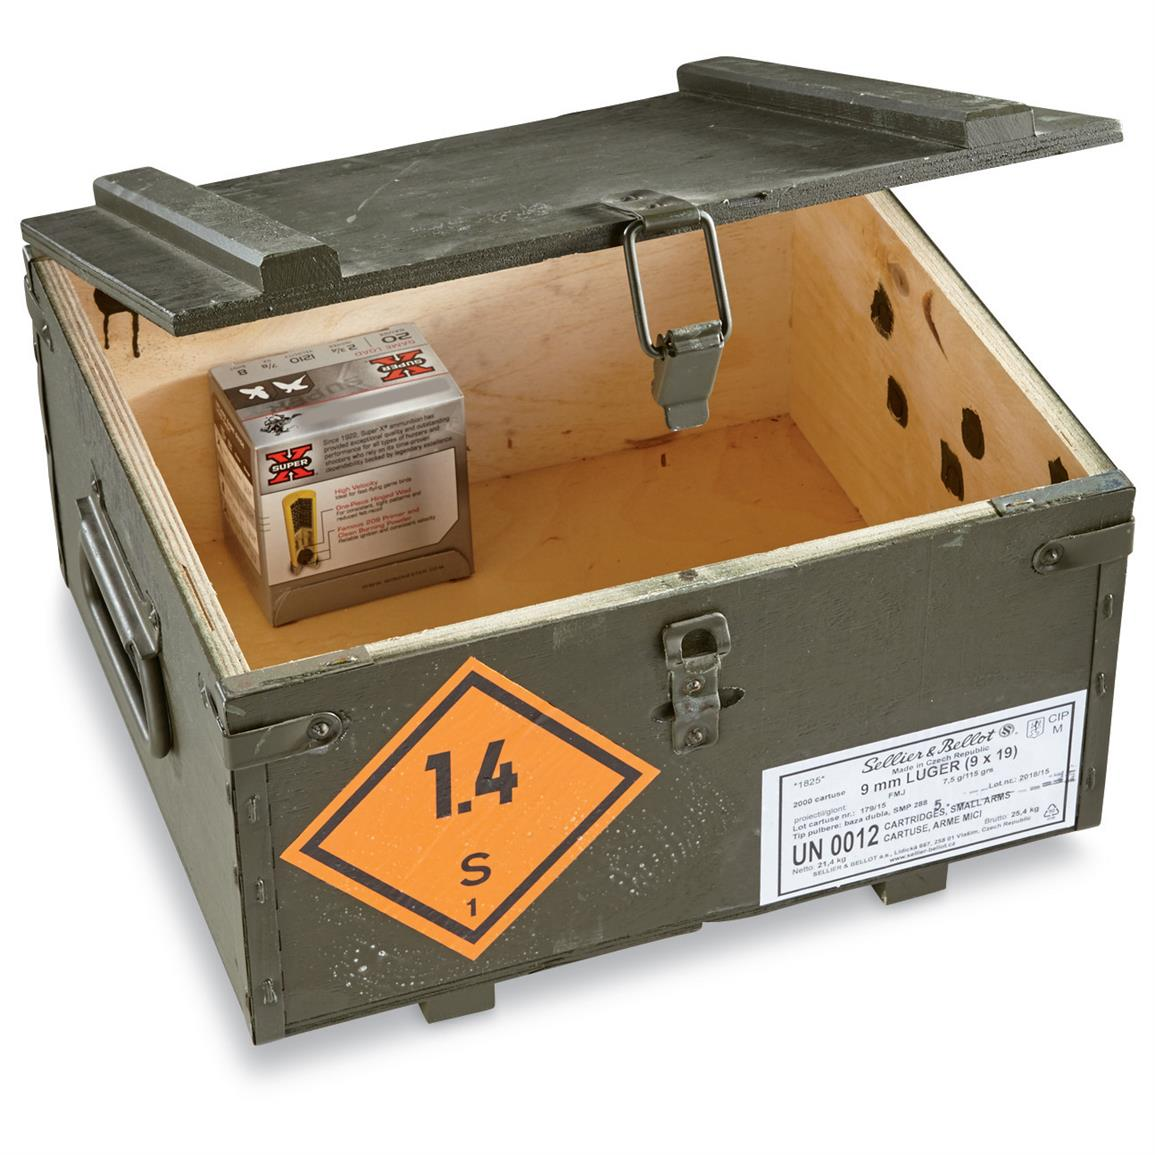 Czech Military Surplus Wooden Ammo Crate Like New 1349